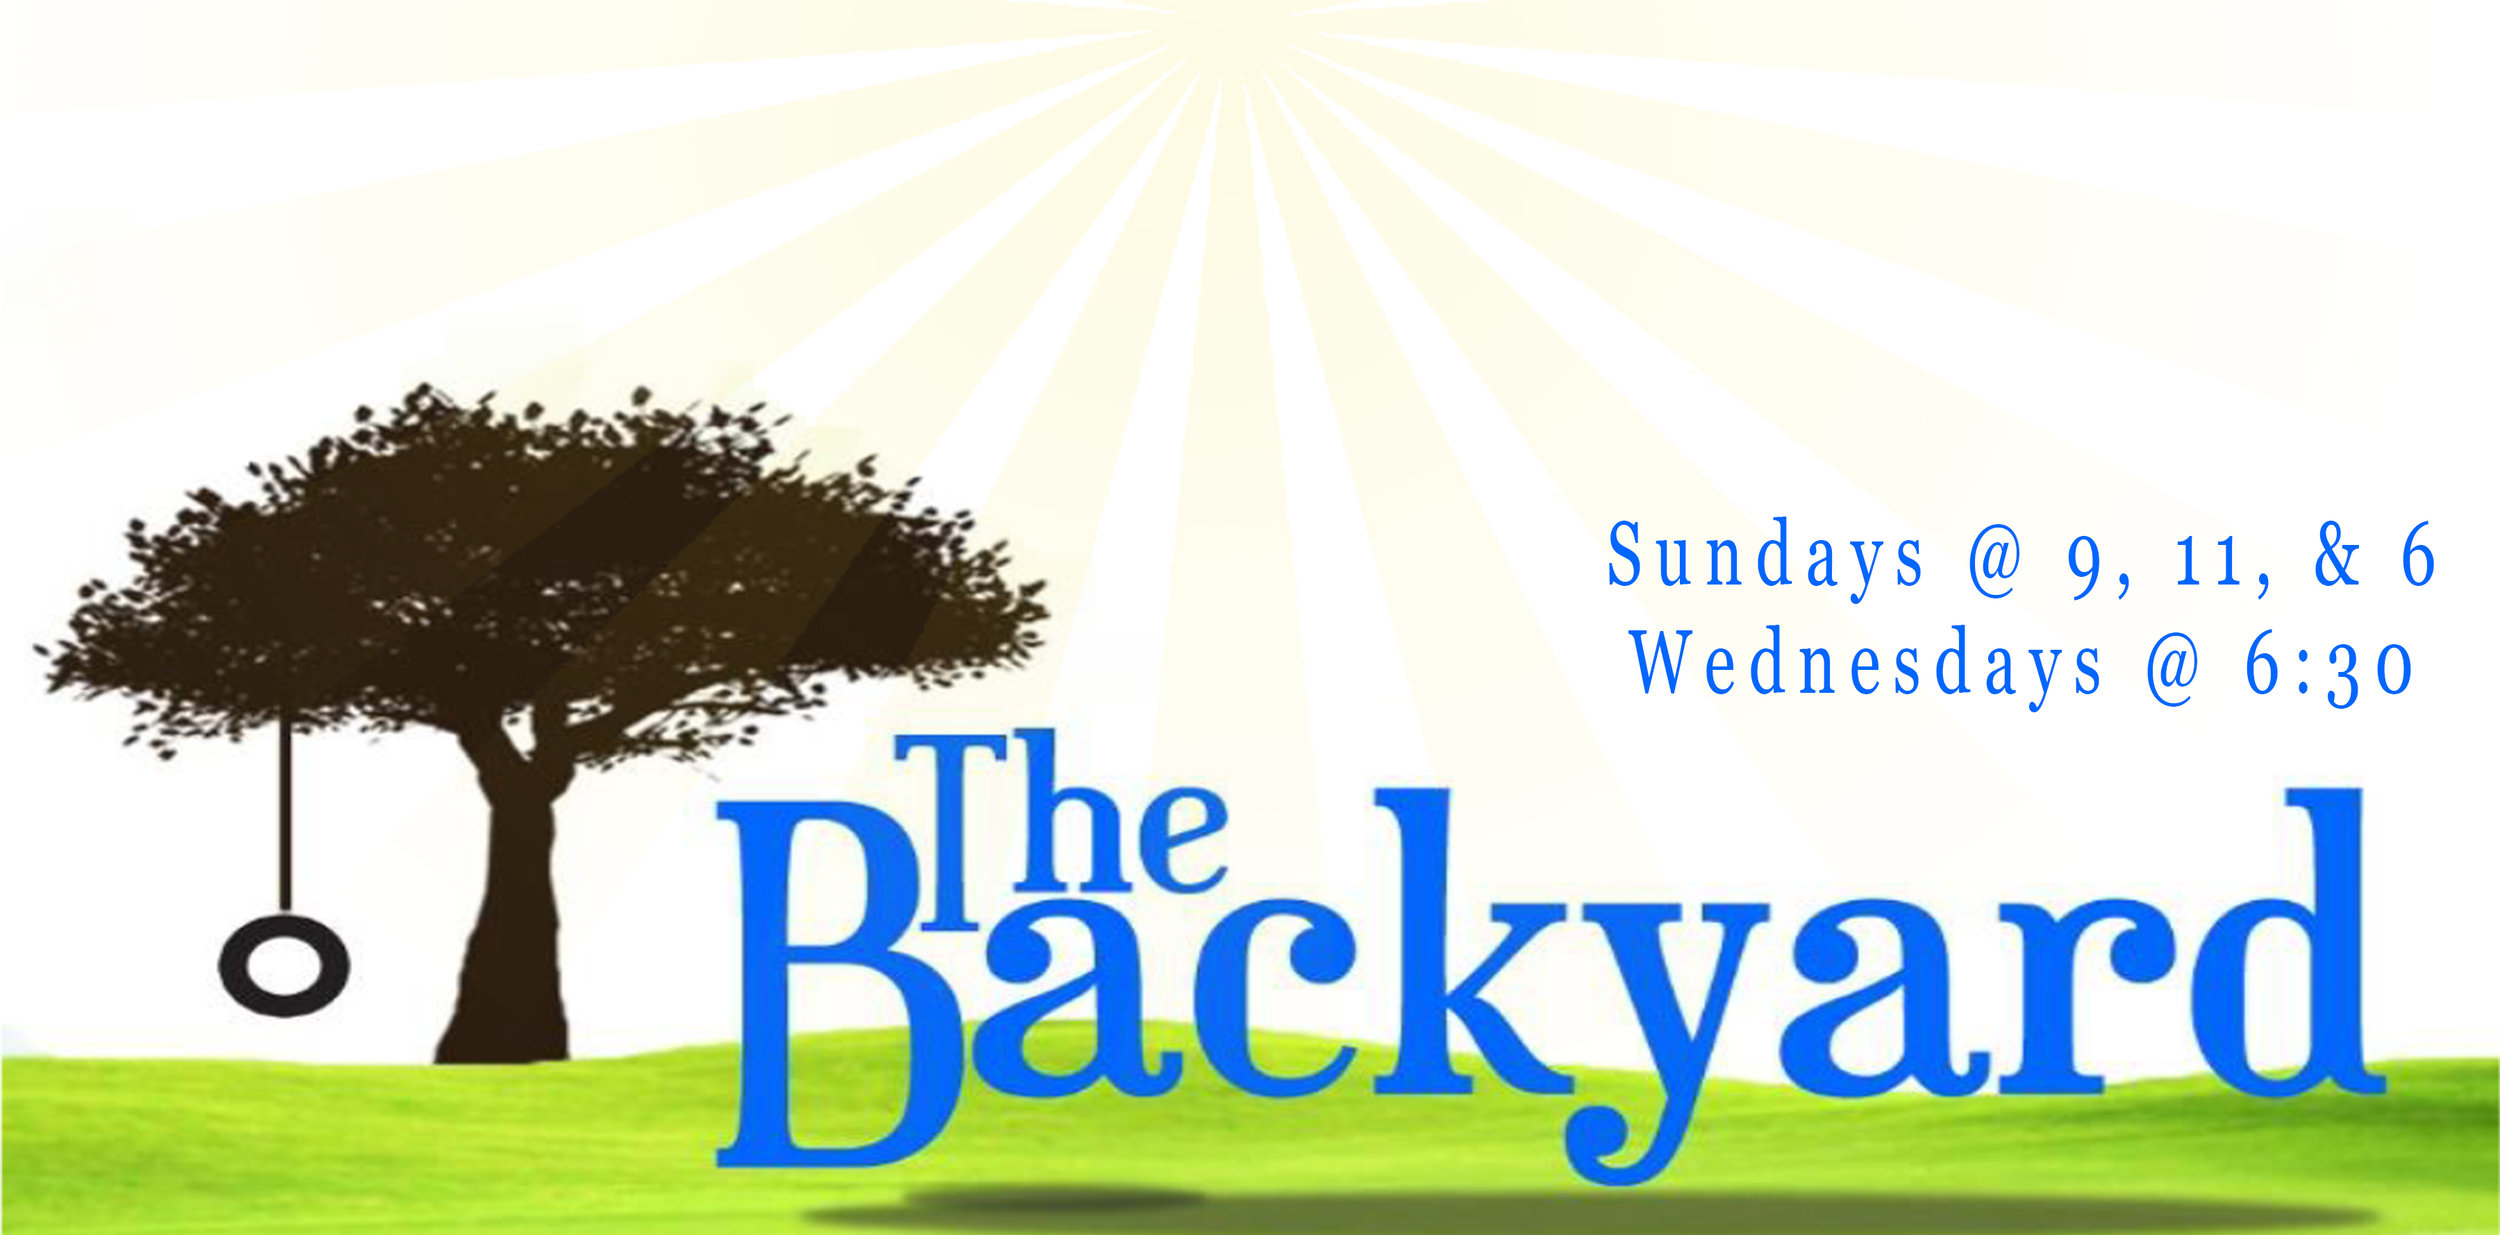 Bring your kids! - The Backyard is a place where your children will be safe, have fun, and experience all that Jesus has for them! Email our Children's Pastor, Kristy Slaughenhaupt. kristys@vineyardlive.org